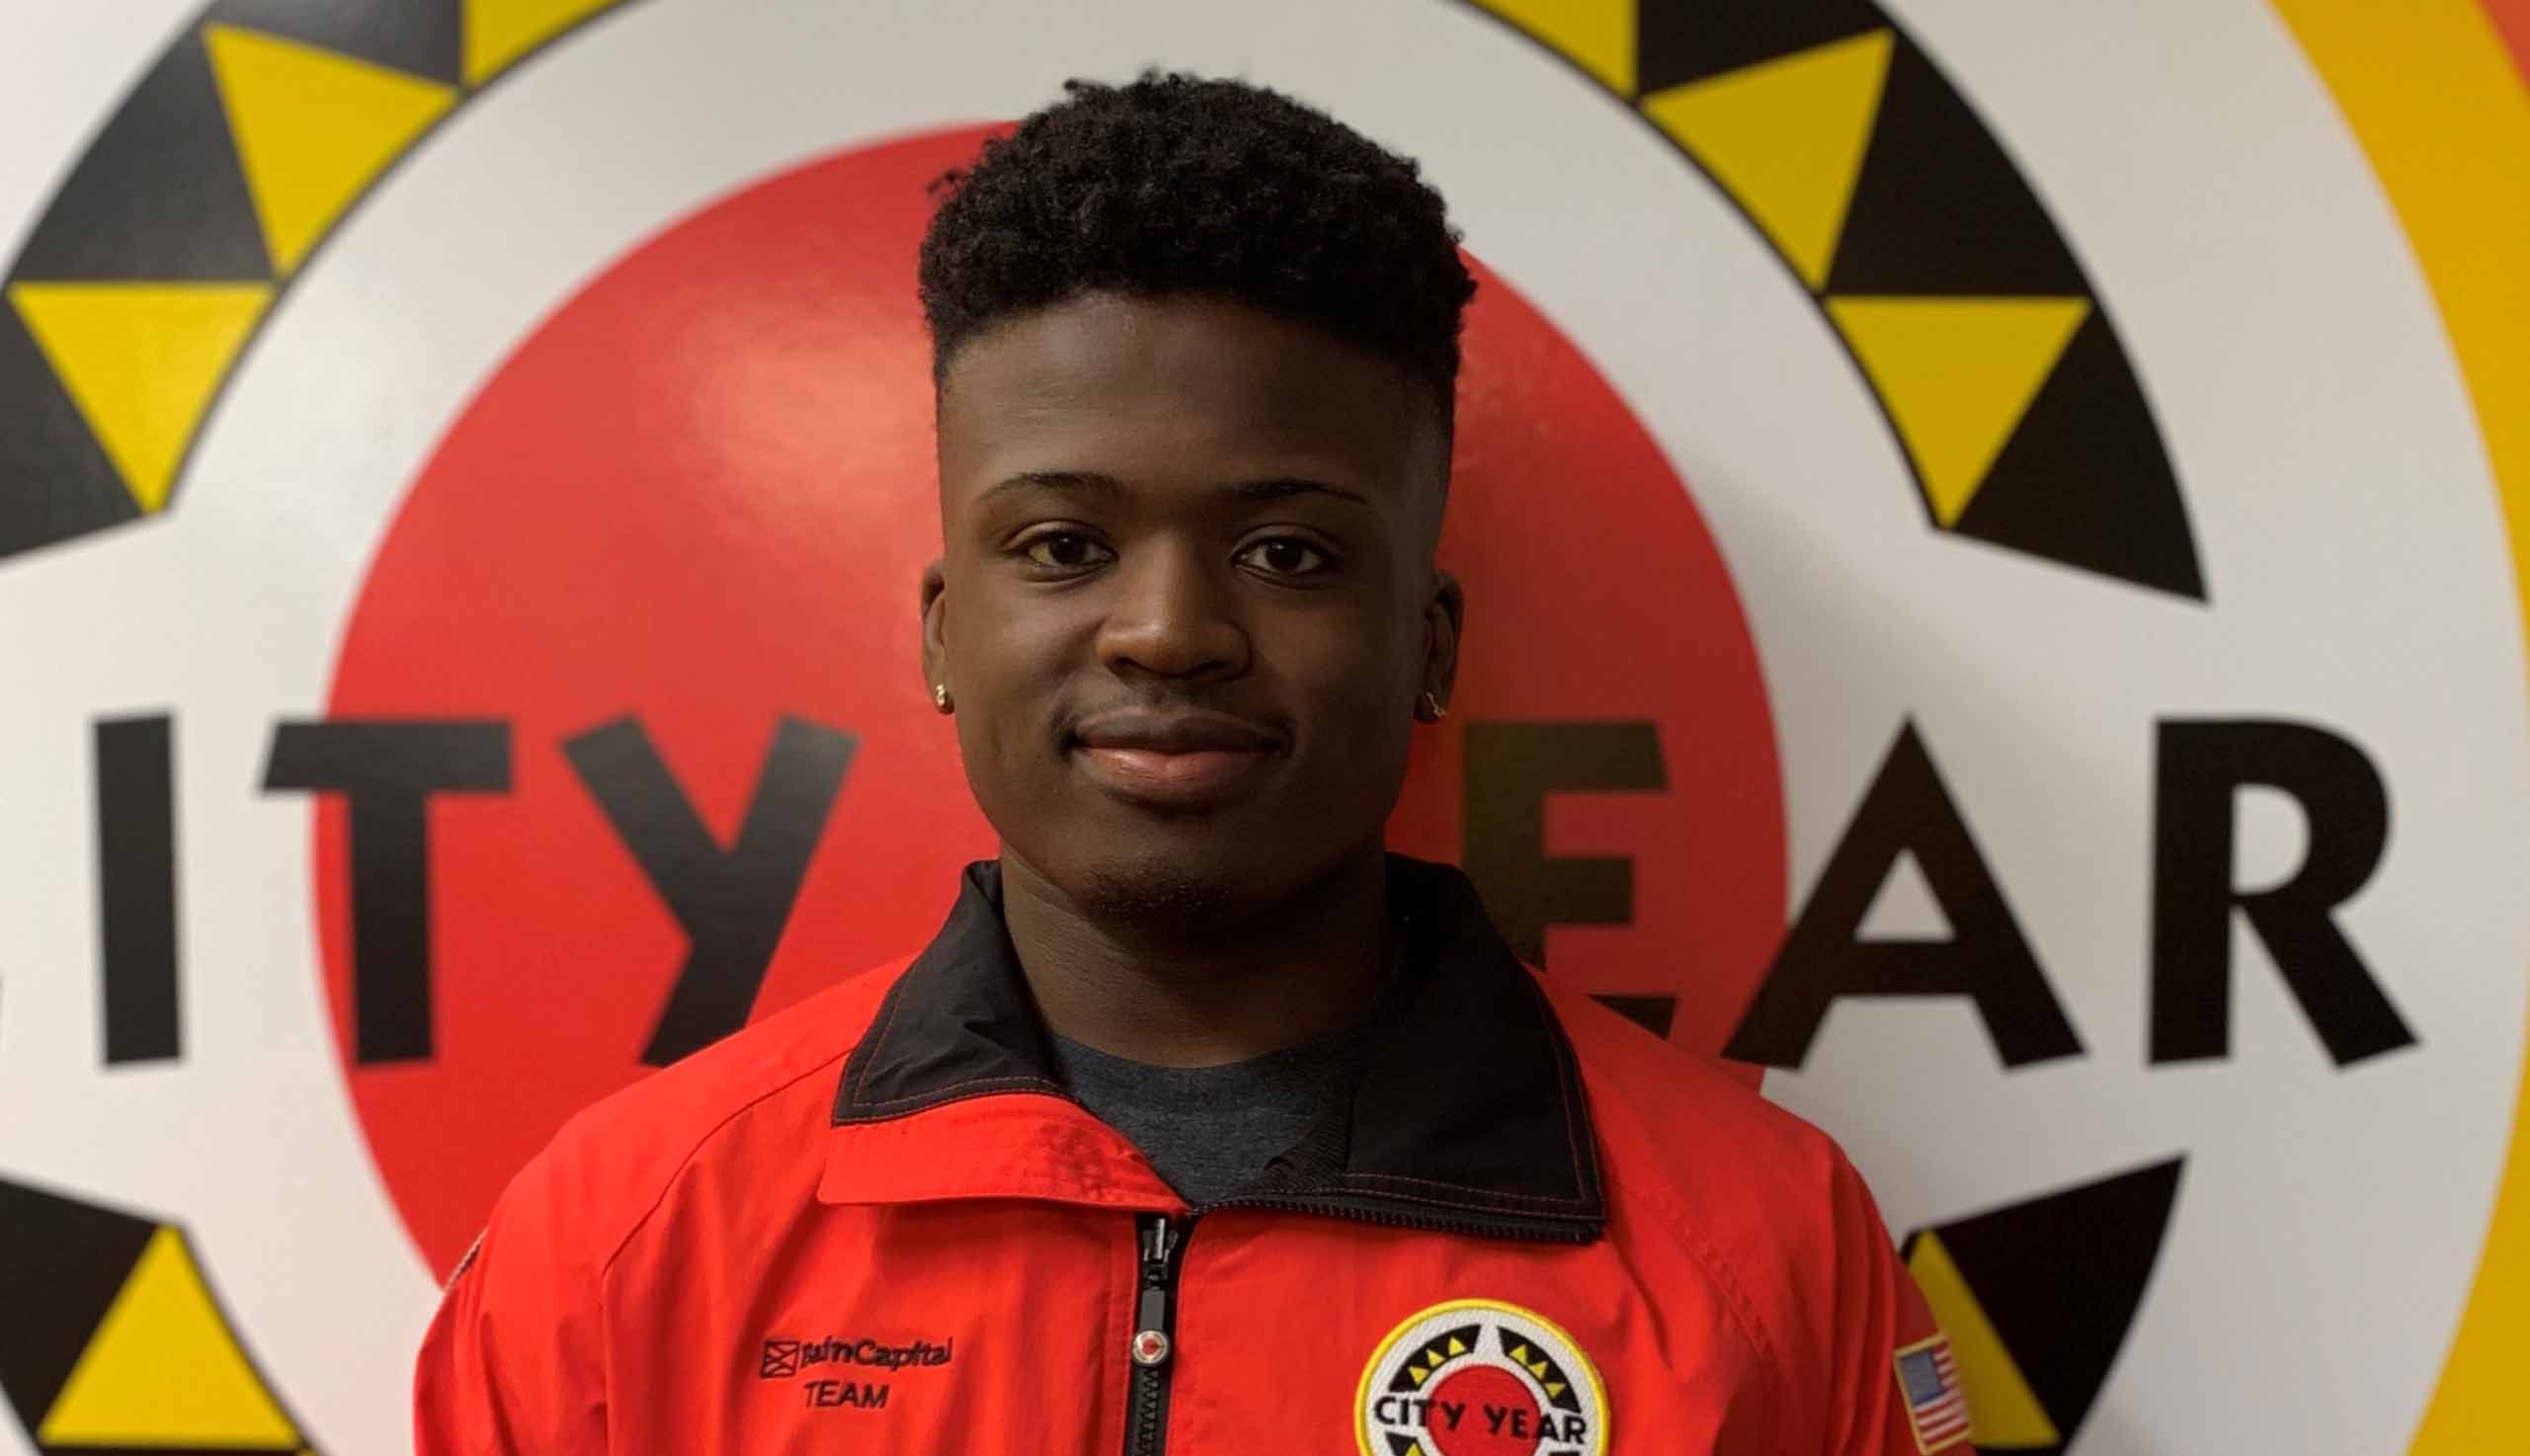 City Year Corps Member of the Month - December 2019: Isaiah Dawson